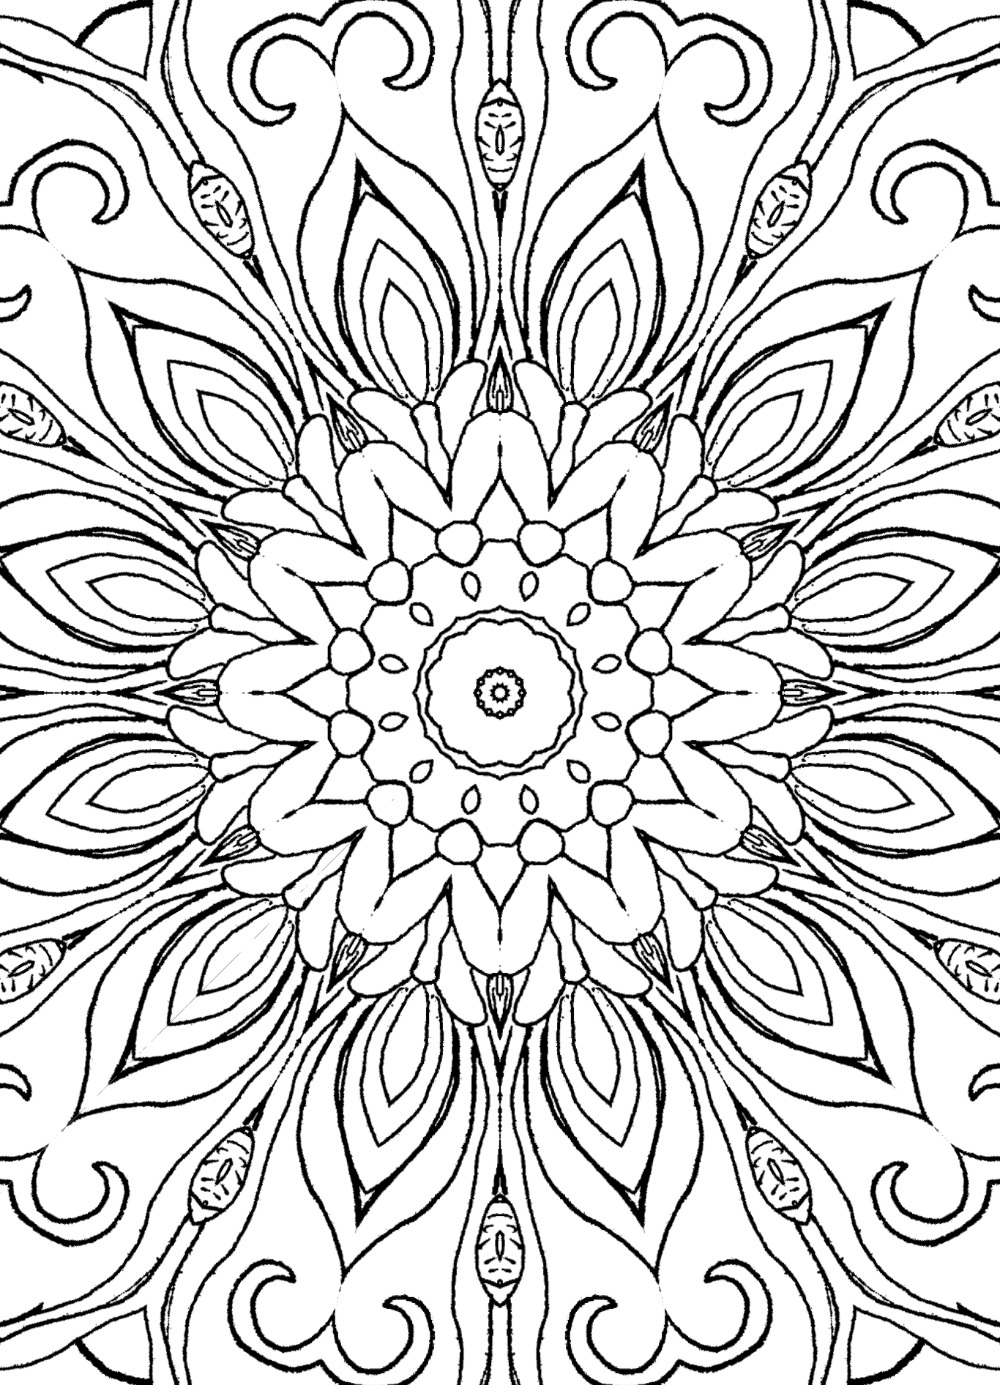 15 Fun Fancy Funky Faces Coloring Pages For Adults Vol2